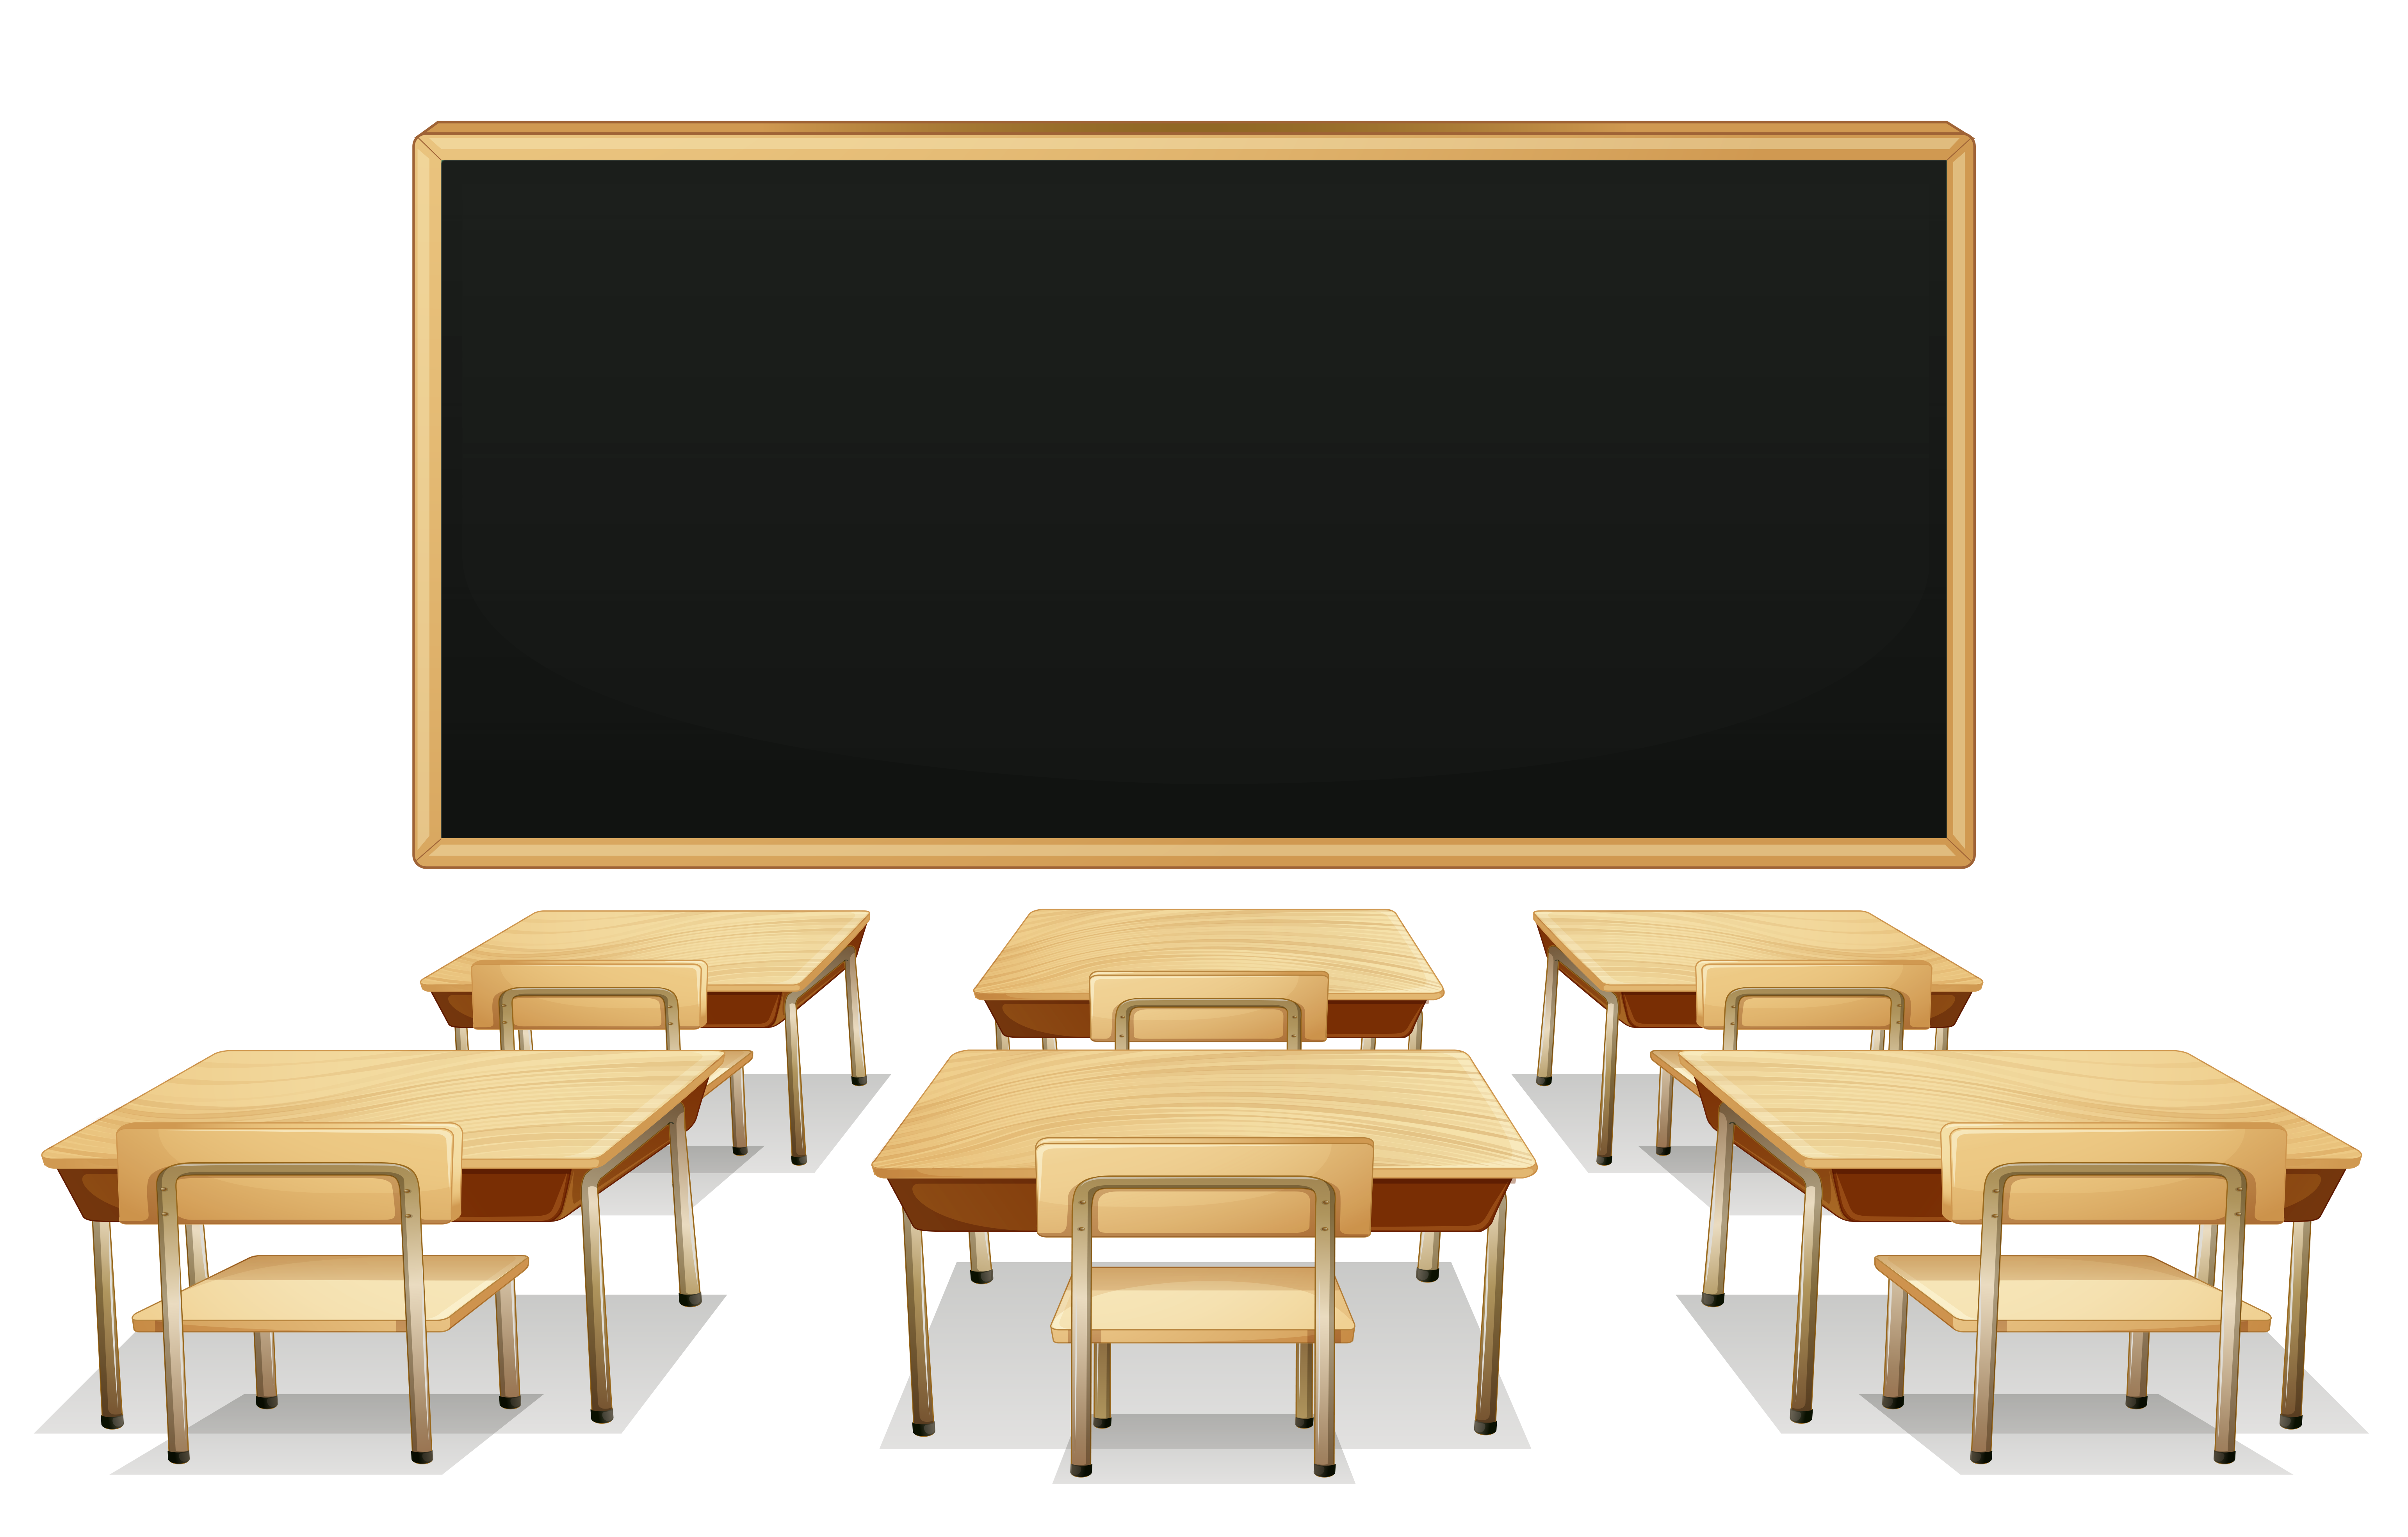 Announcements clipart classroom. School with blackboard and